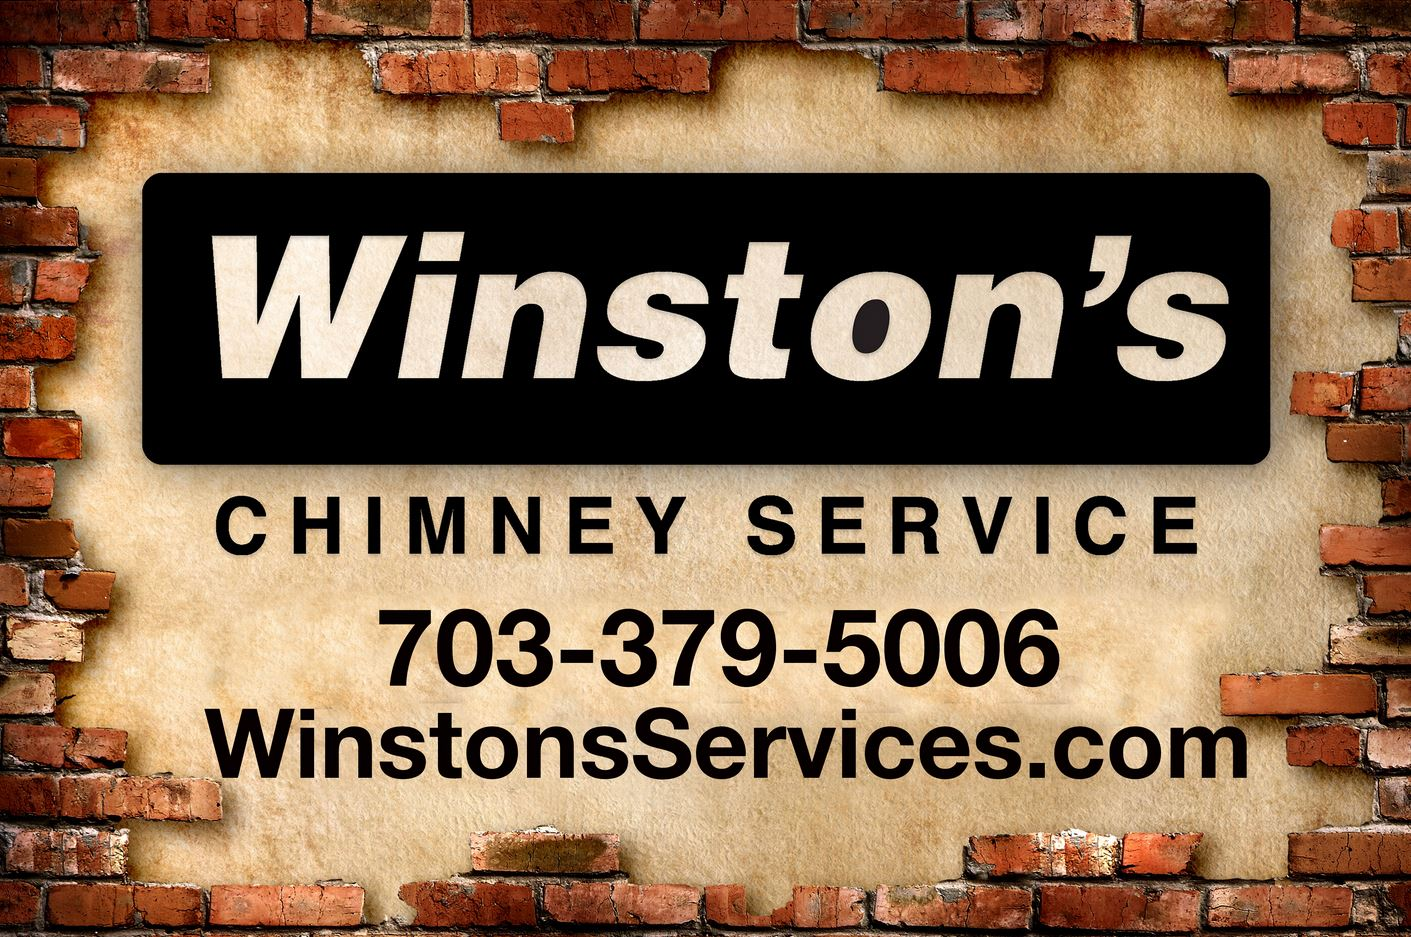 Schooley-Mitchell-Virginia-cost-reduction-telecom-merchant-waste-services-client-Winstons-Chimney-Service